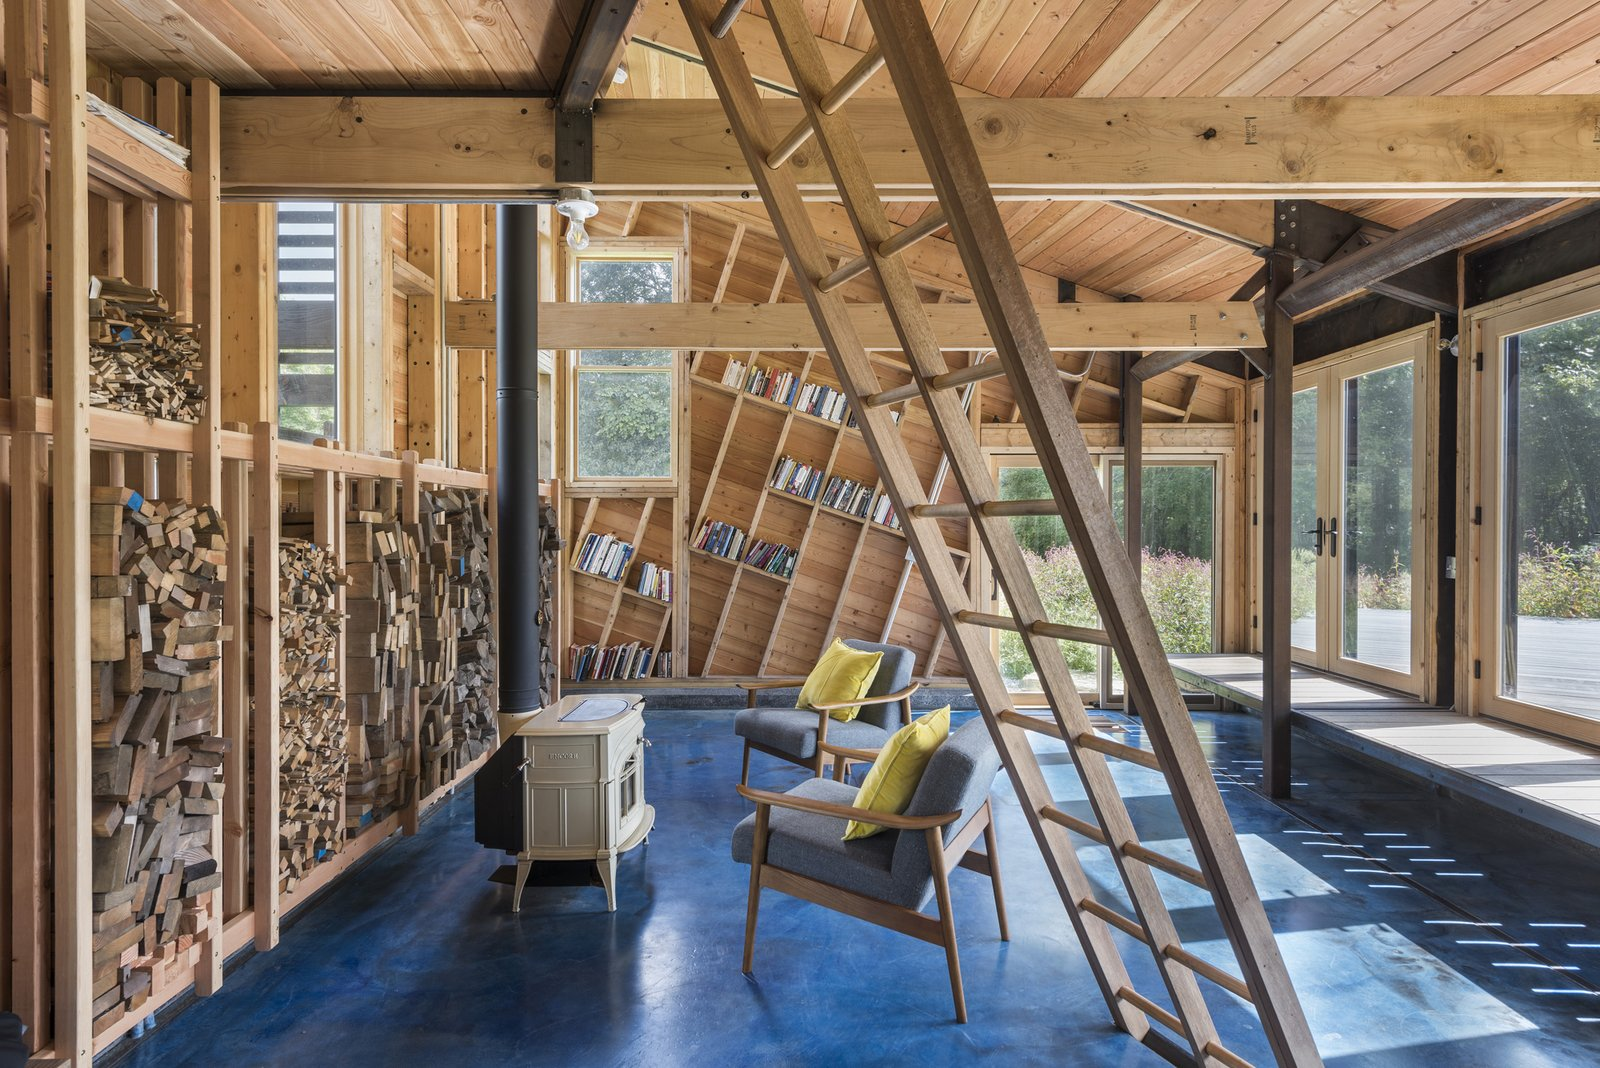 Douglas fir boards follow the angle of the roof, exaggerating the cabin's form.